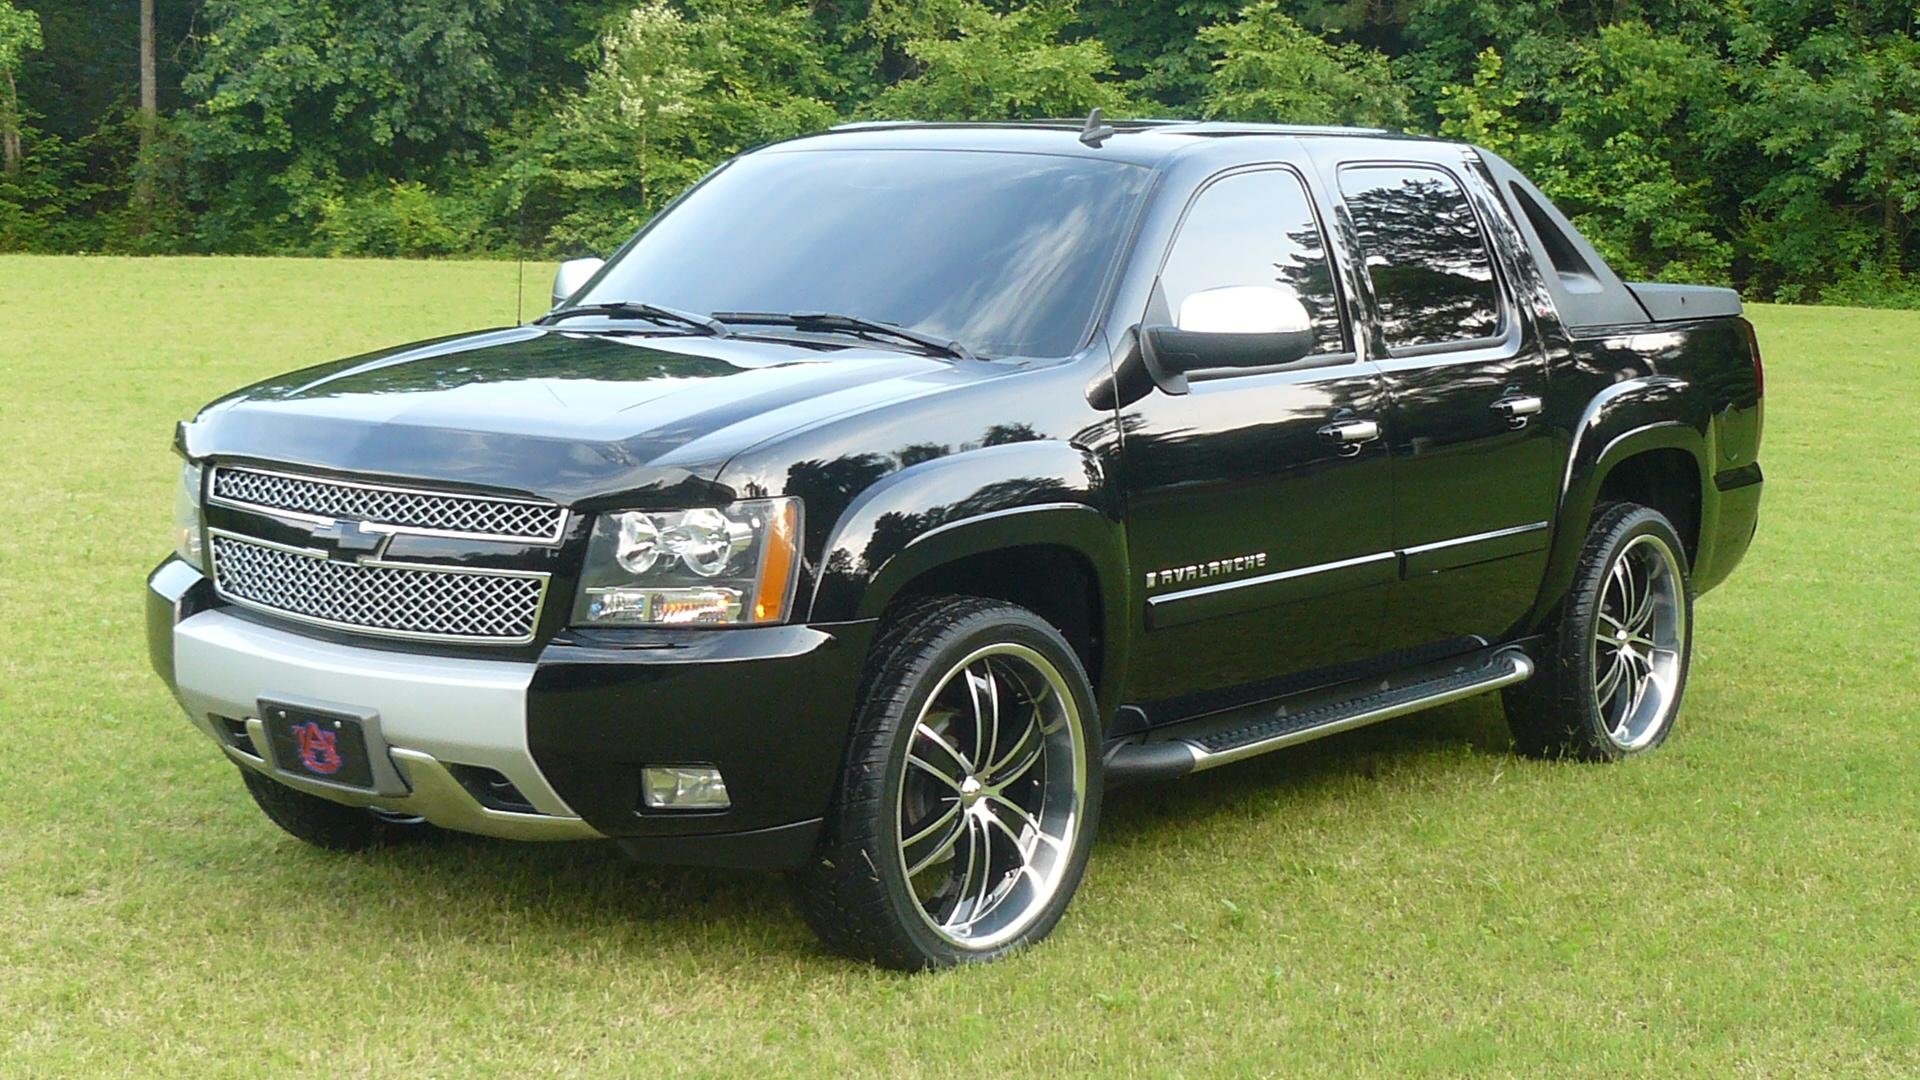 2008 z71avy 2008 chevrolet avalanche specs photos modification info at cardomain. Black Bedroom Furniture Sets. Home Design Ideas